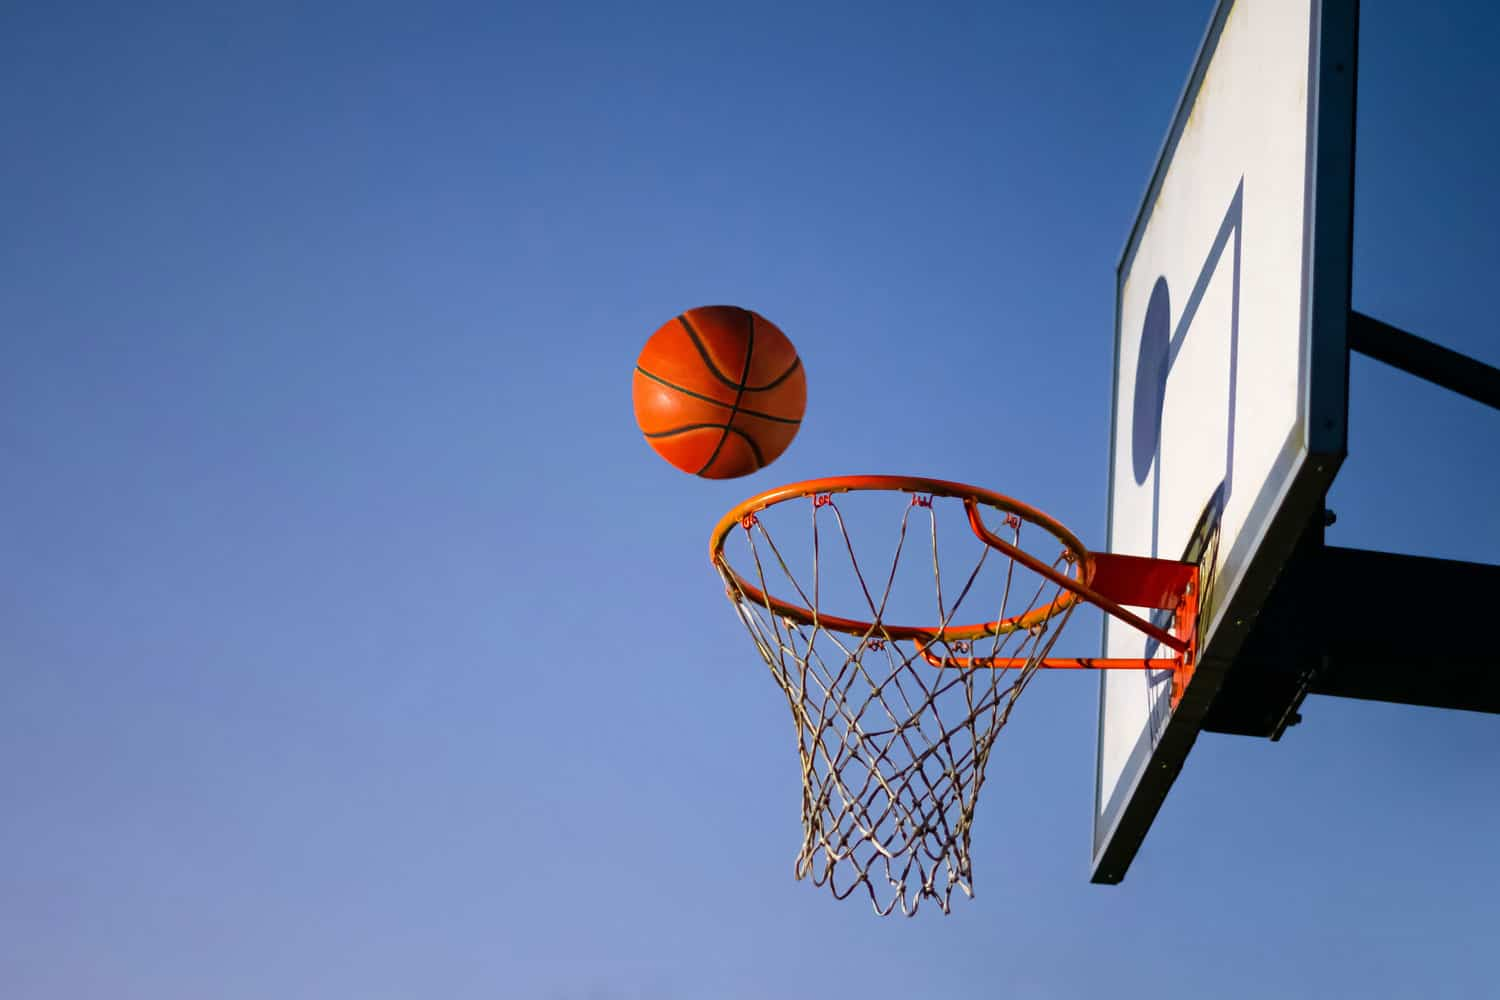 Close up of orange ball above the hoop net with blue sky in the background